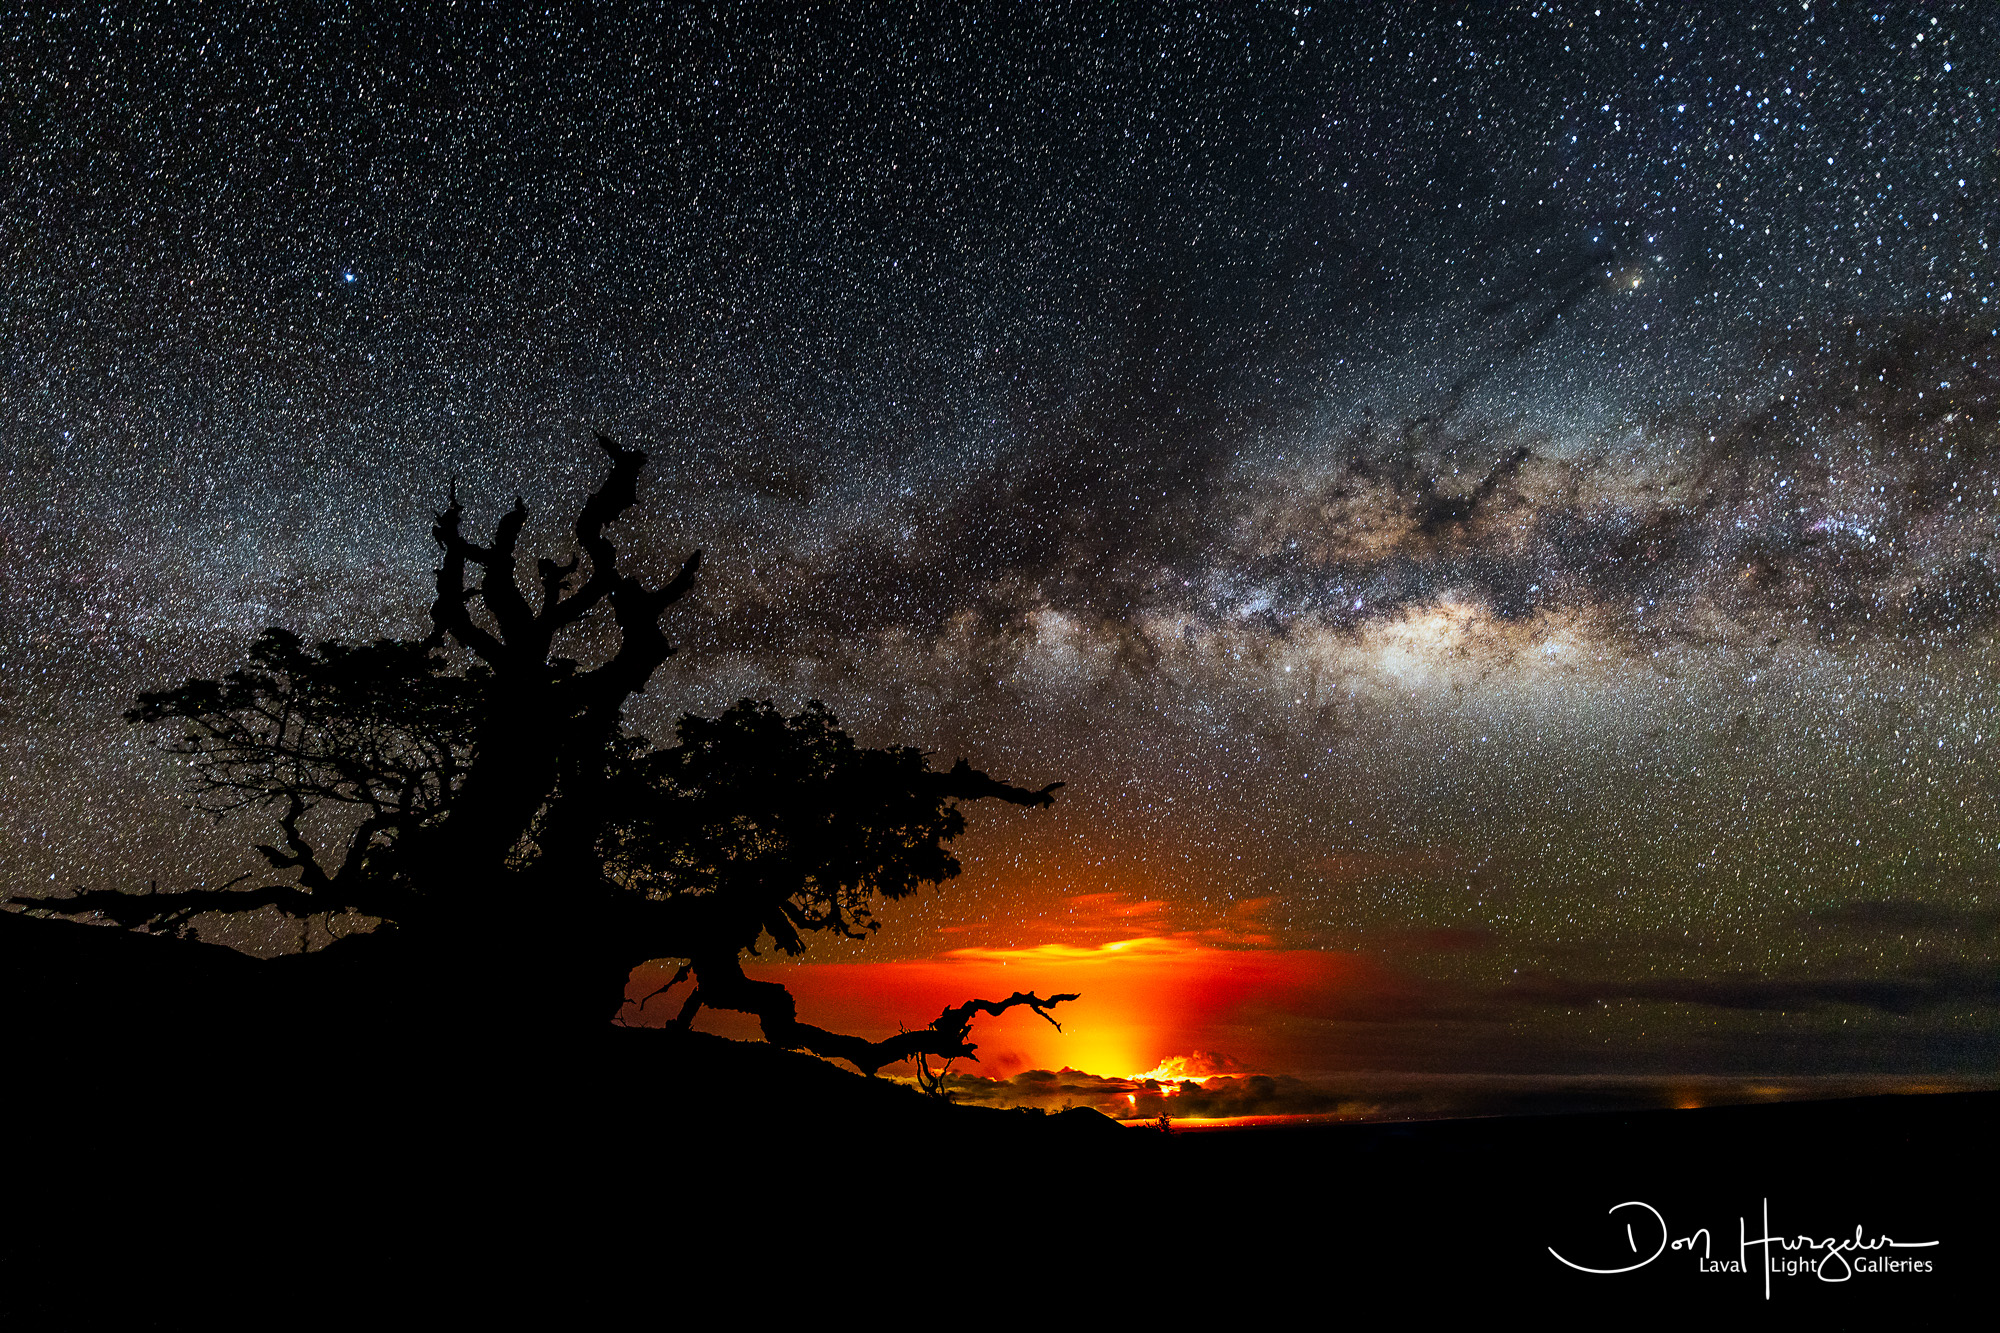 Taken maybe 30 miles away at 8500 feet up Mauna Kea...Milky Way over the Puna eruption.